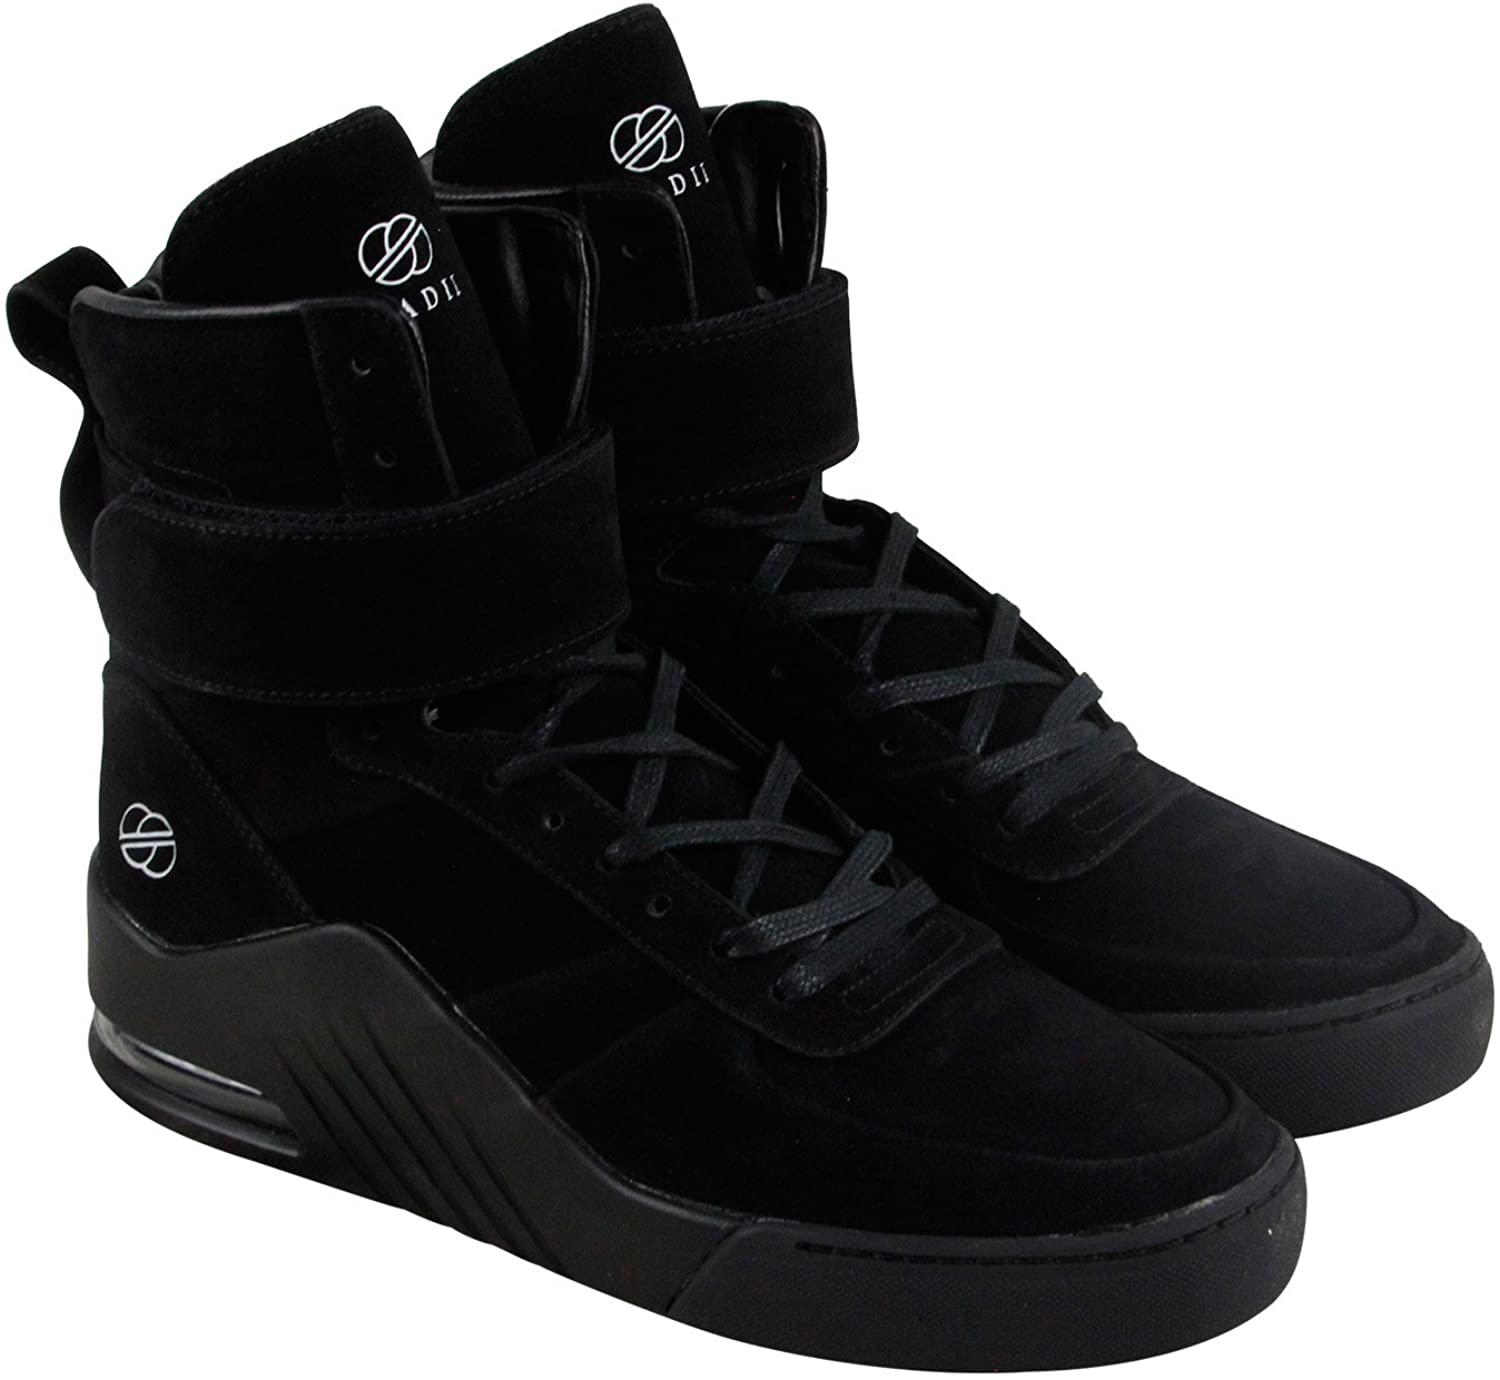 Radii Apex Mens Black Suede High Top Lace up Sneakers Shoes 8